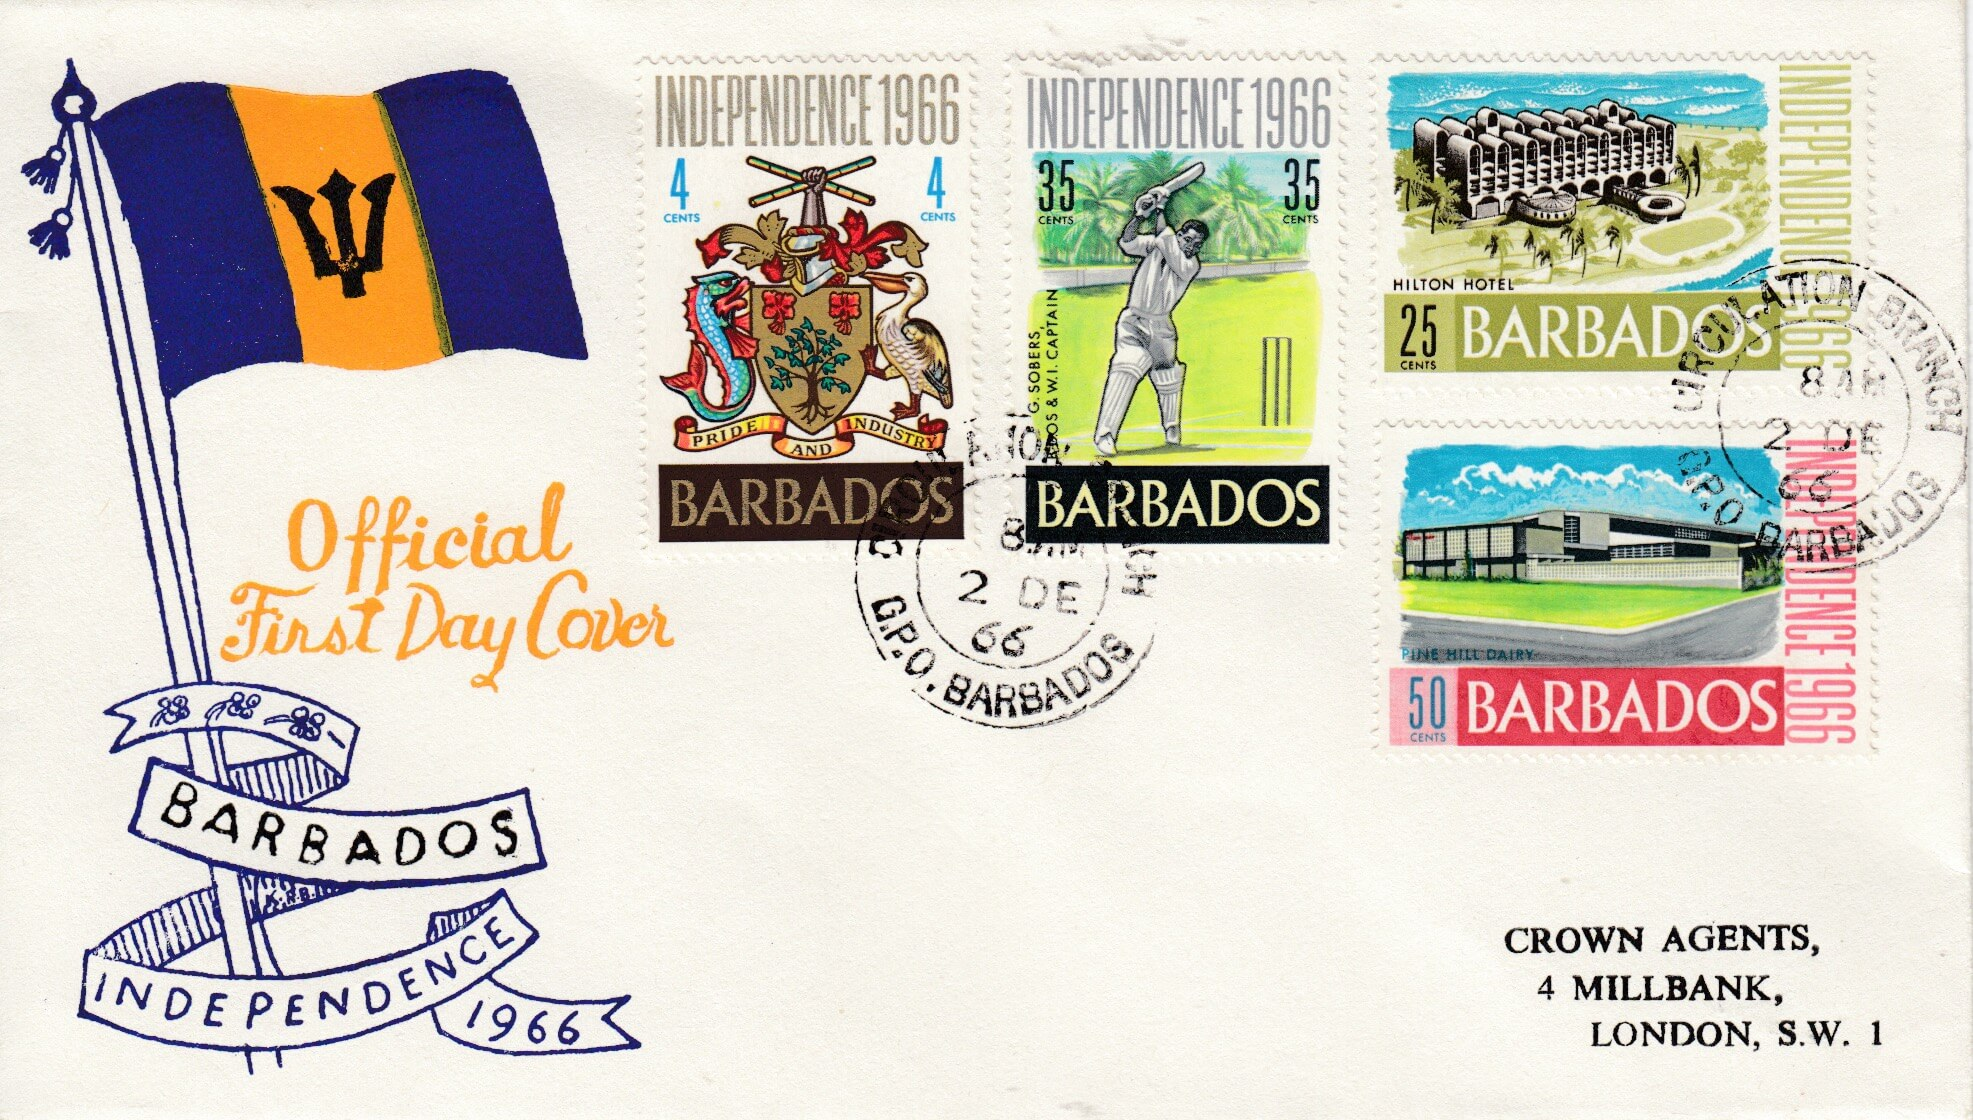 Happy Independence Day, Barbados!